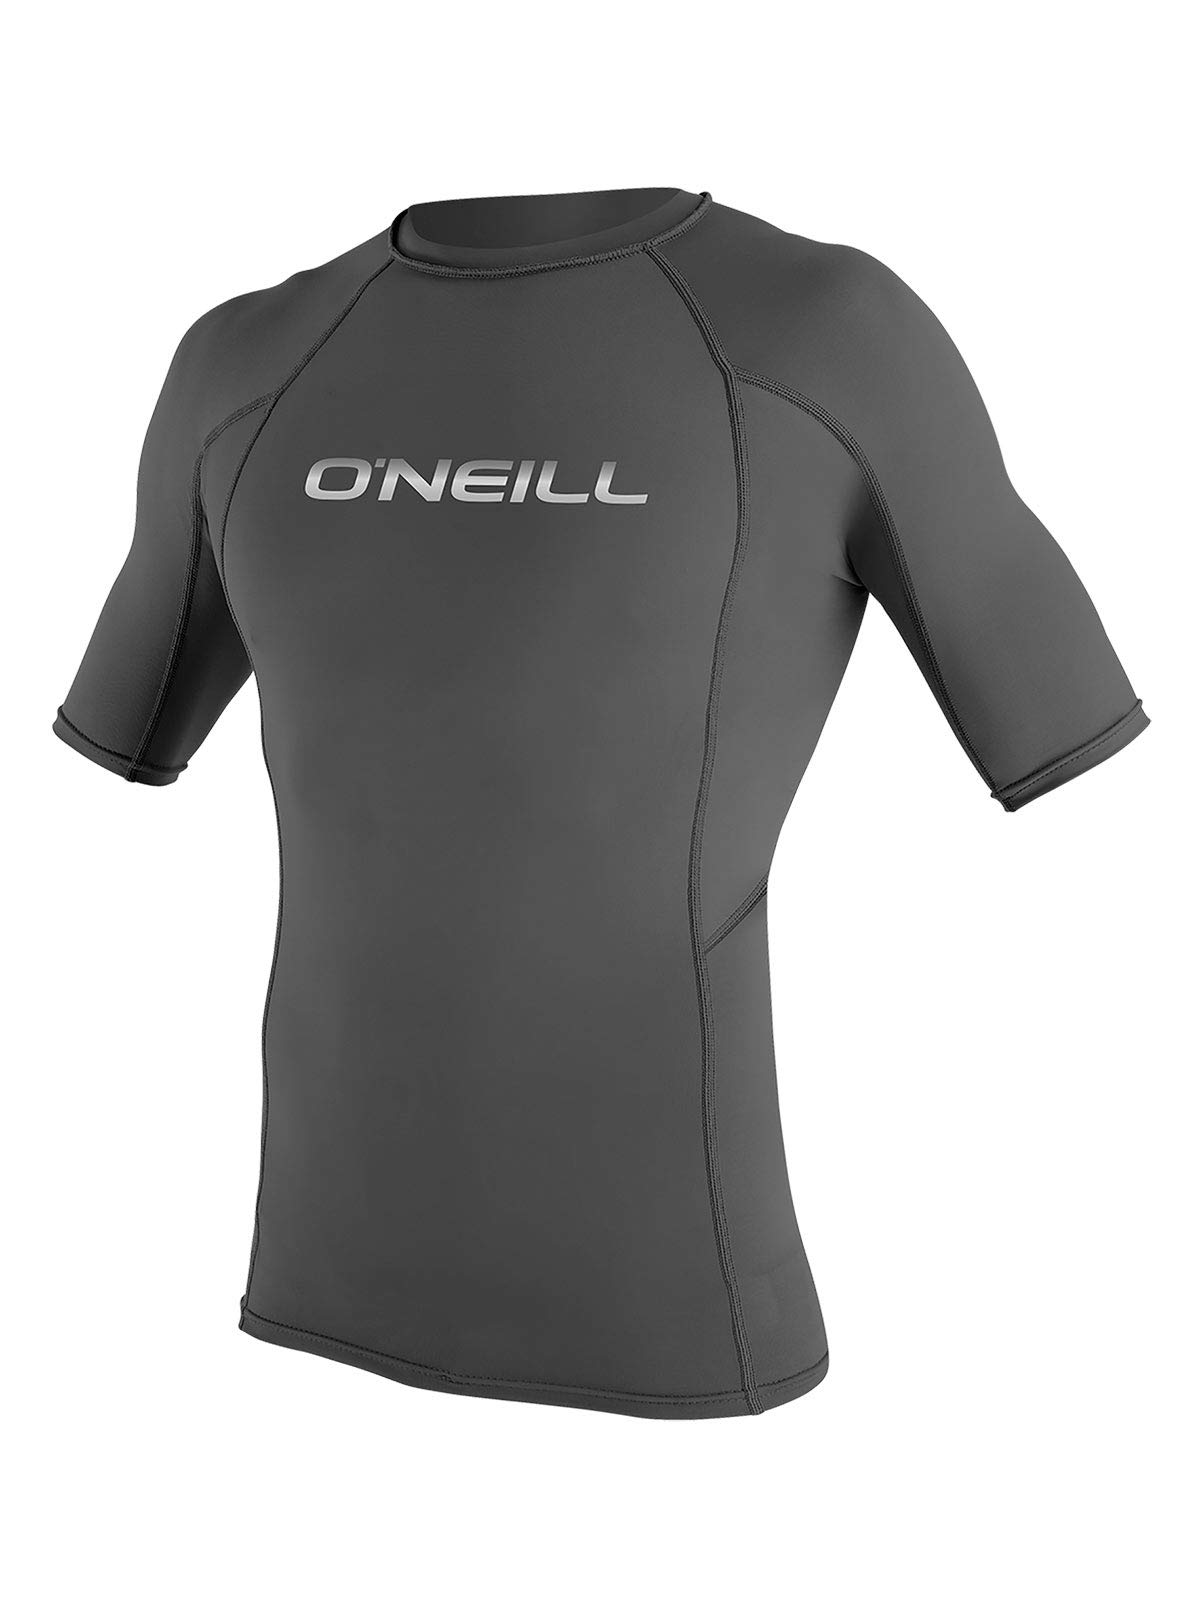 O'Neill Men's Basic Skins Short Sleeve Rashguard M Graphite (3341IB) by O'Neill Wetsuits